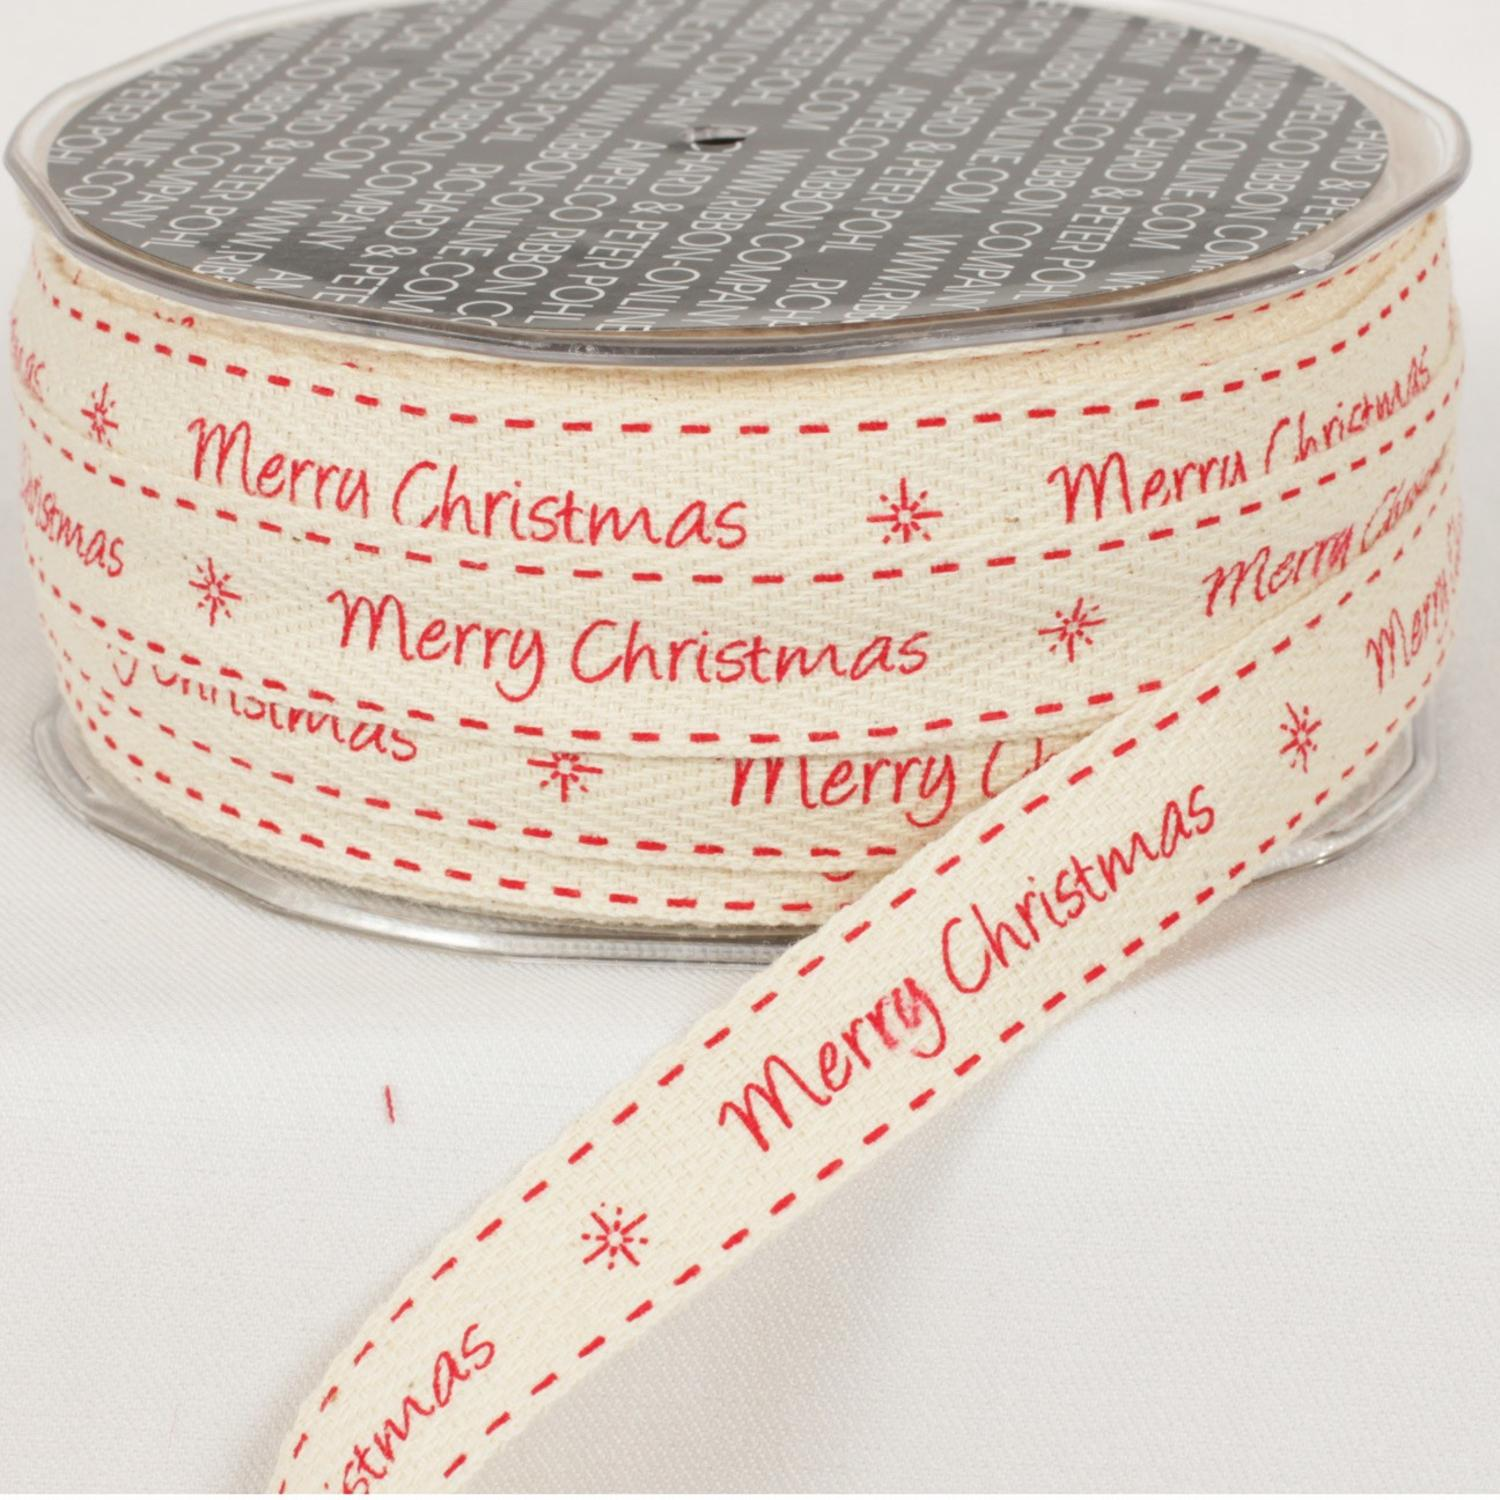 "Cream and Red Merry Christmas Woven Edge Craft Ribbon 5/8"" x 60 Yards"